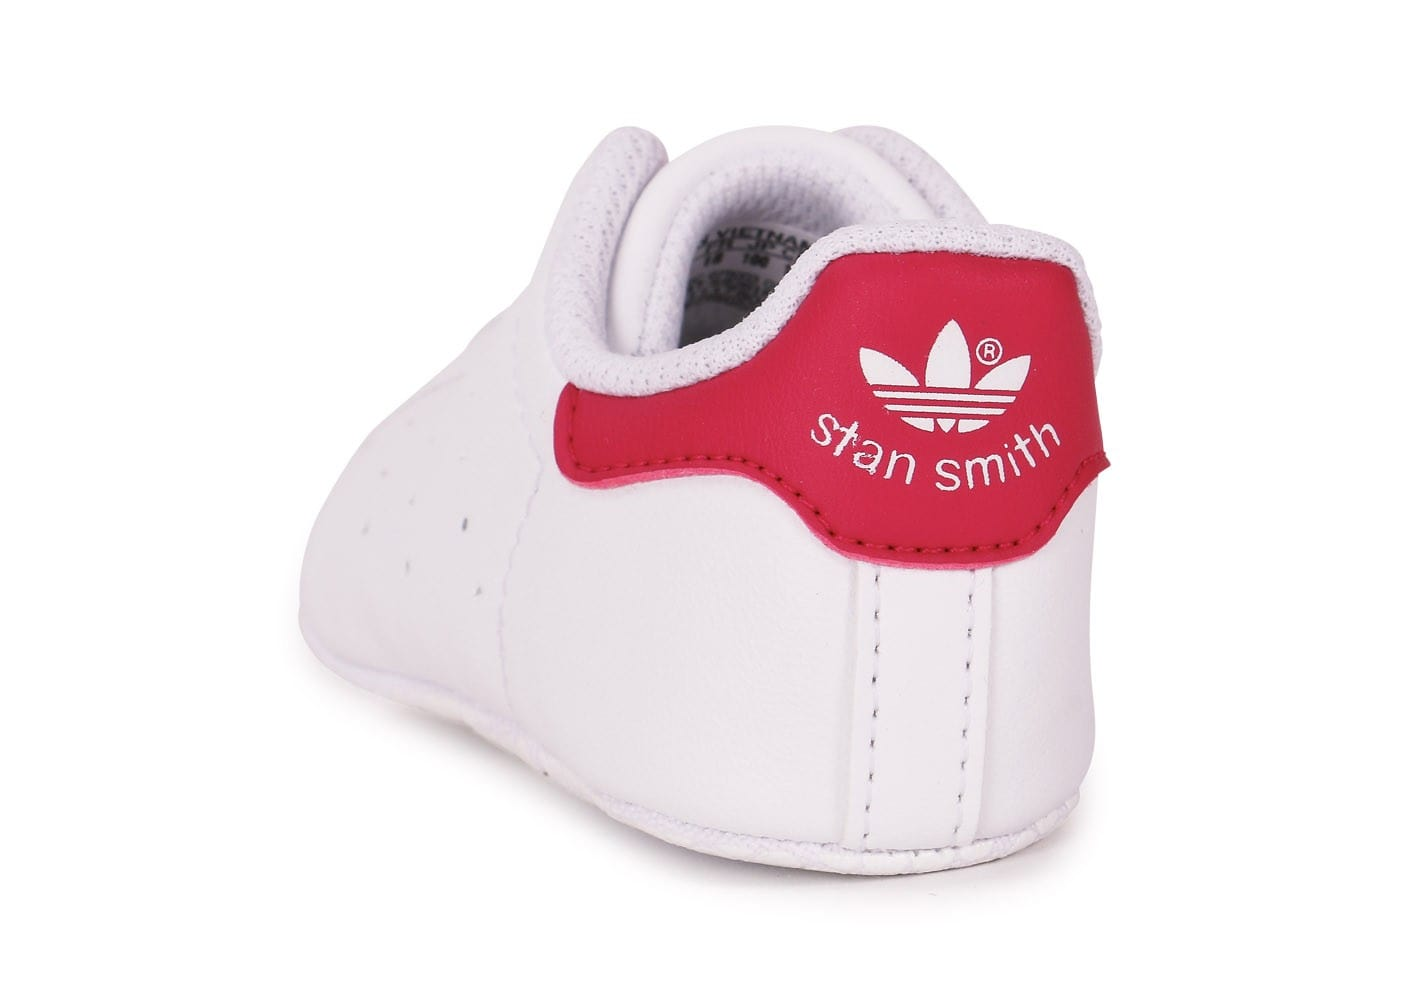 soldes adidas stan smith b b blanc rose chaussures adidas chausport. Black Bedroom Furniture Sets. Home Design Ideas